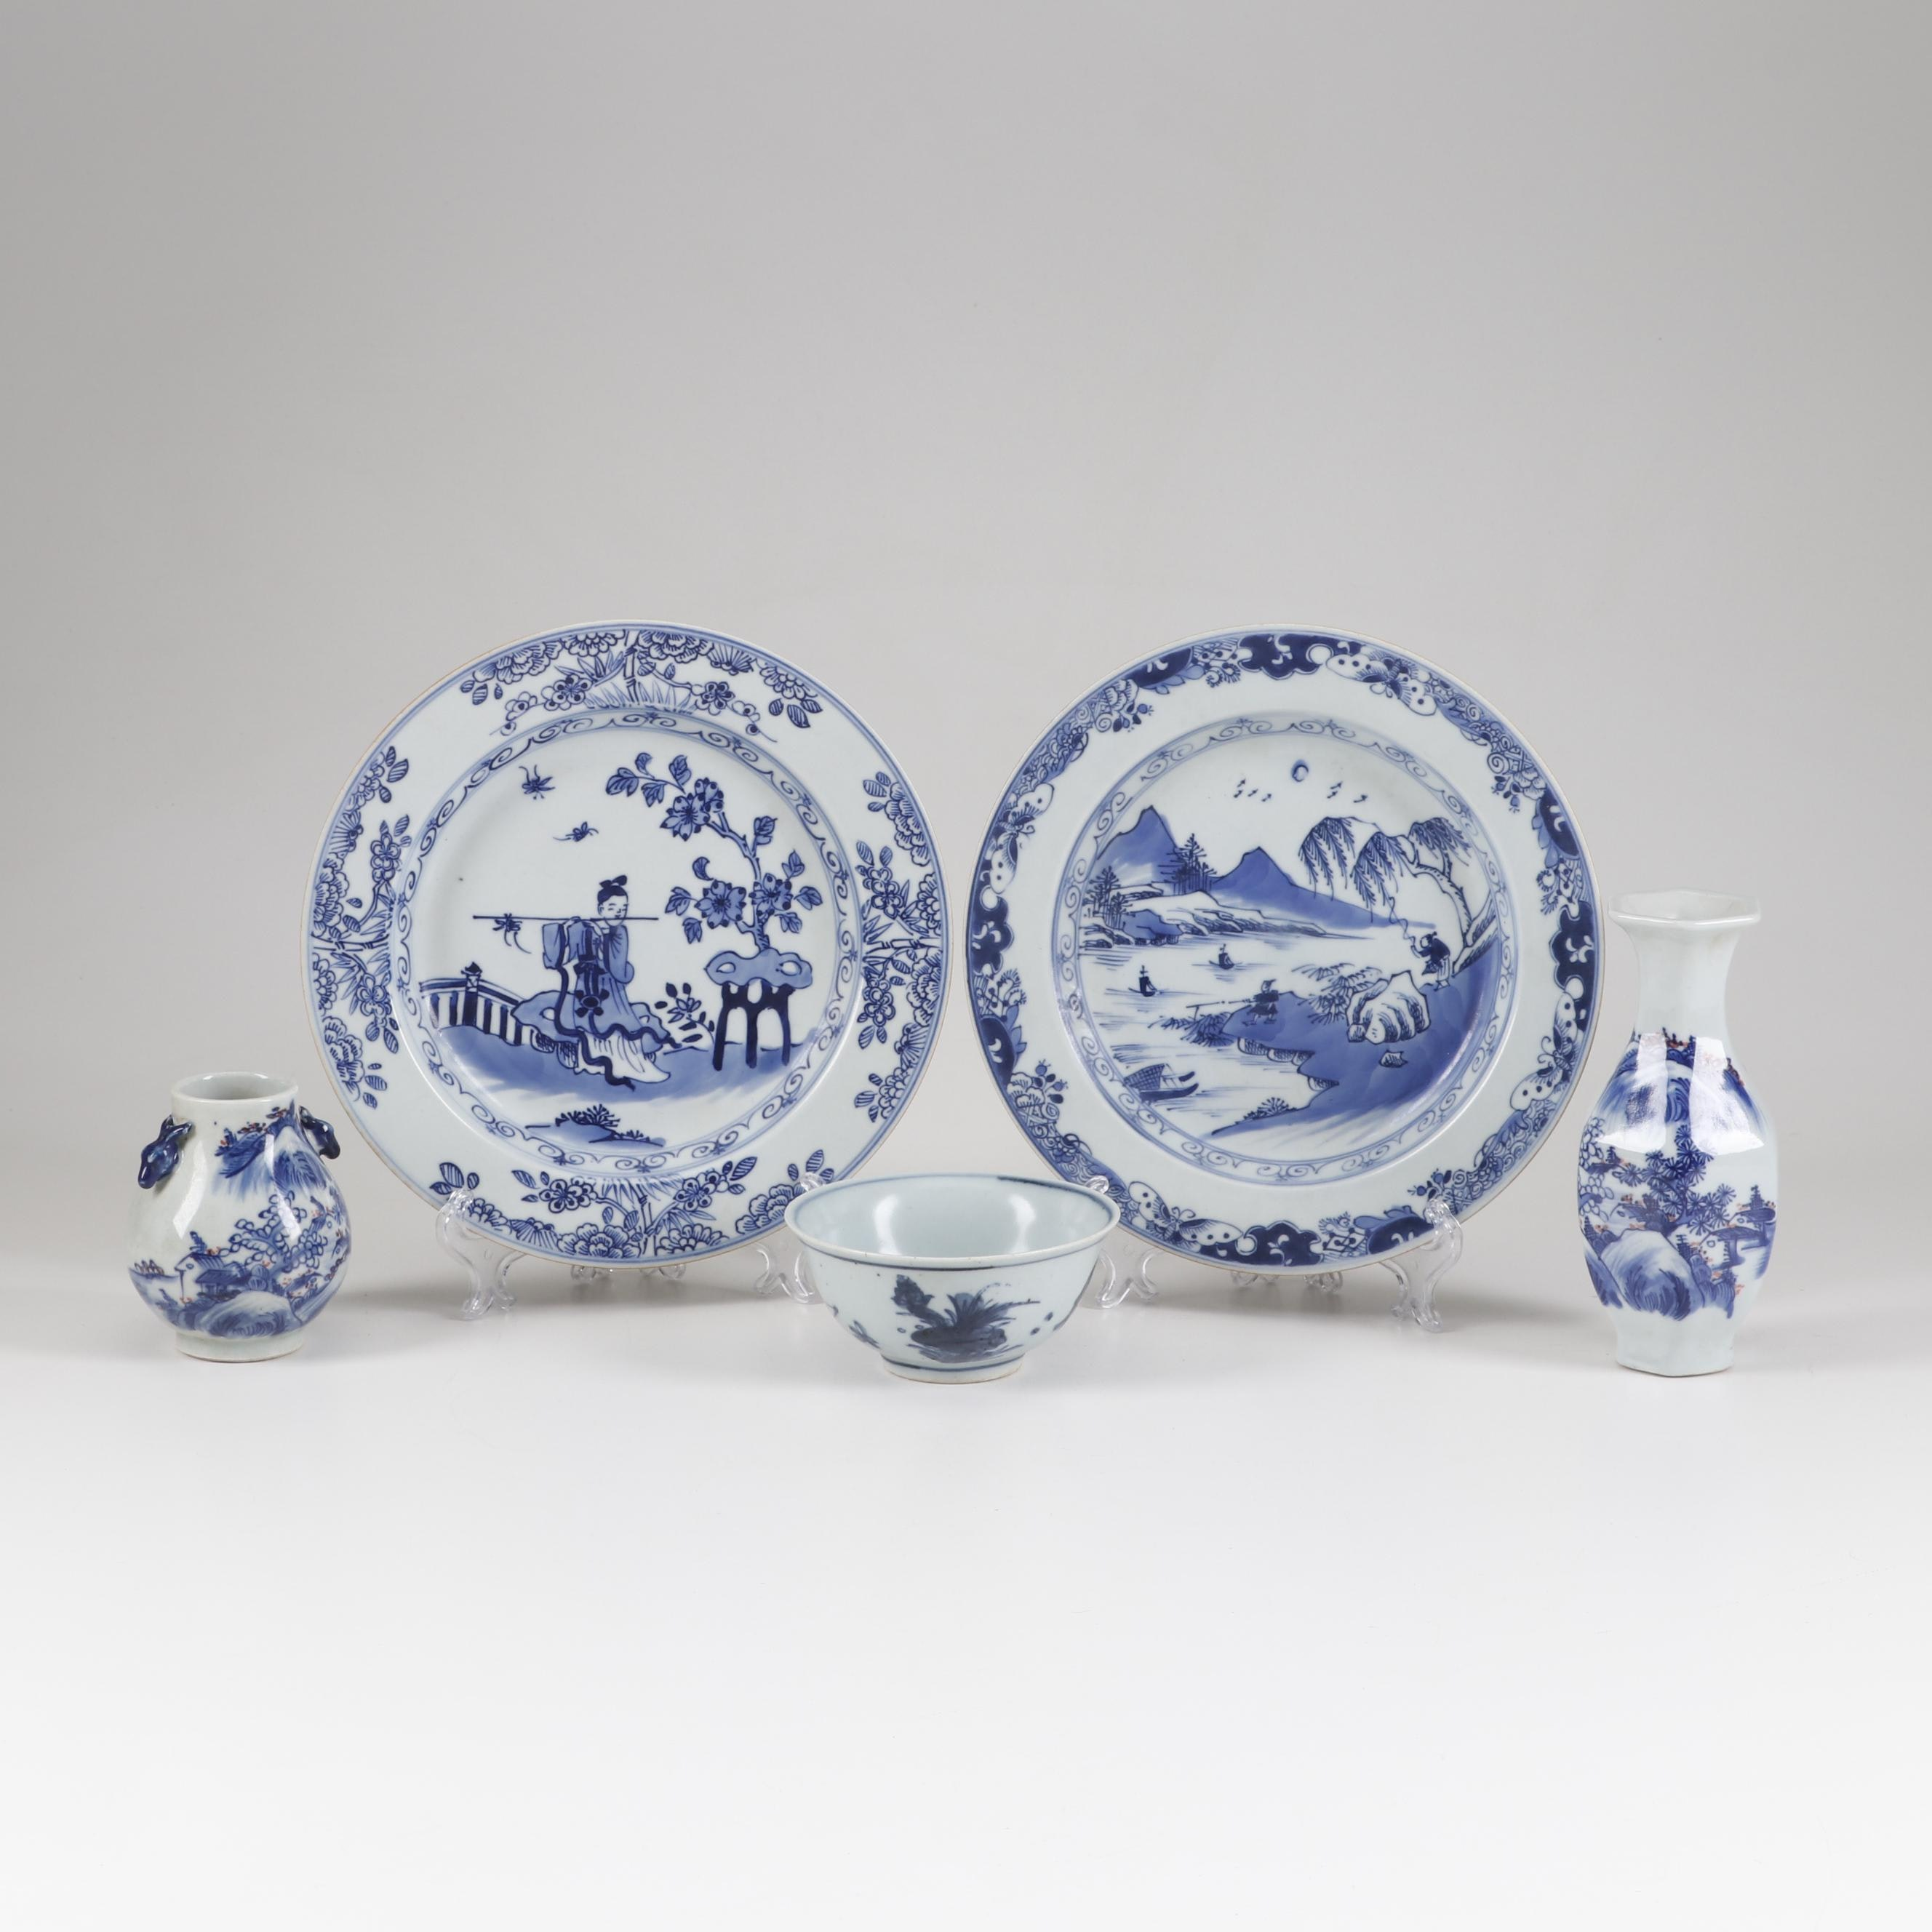 Chinese 'Hundred Deer' Porcelain Deer and Other Ceramics